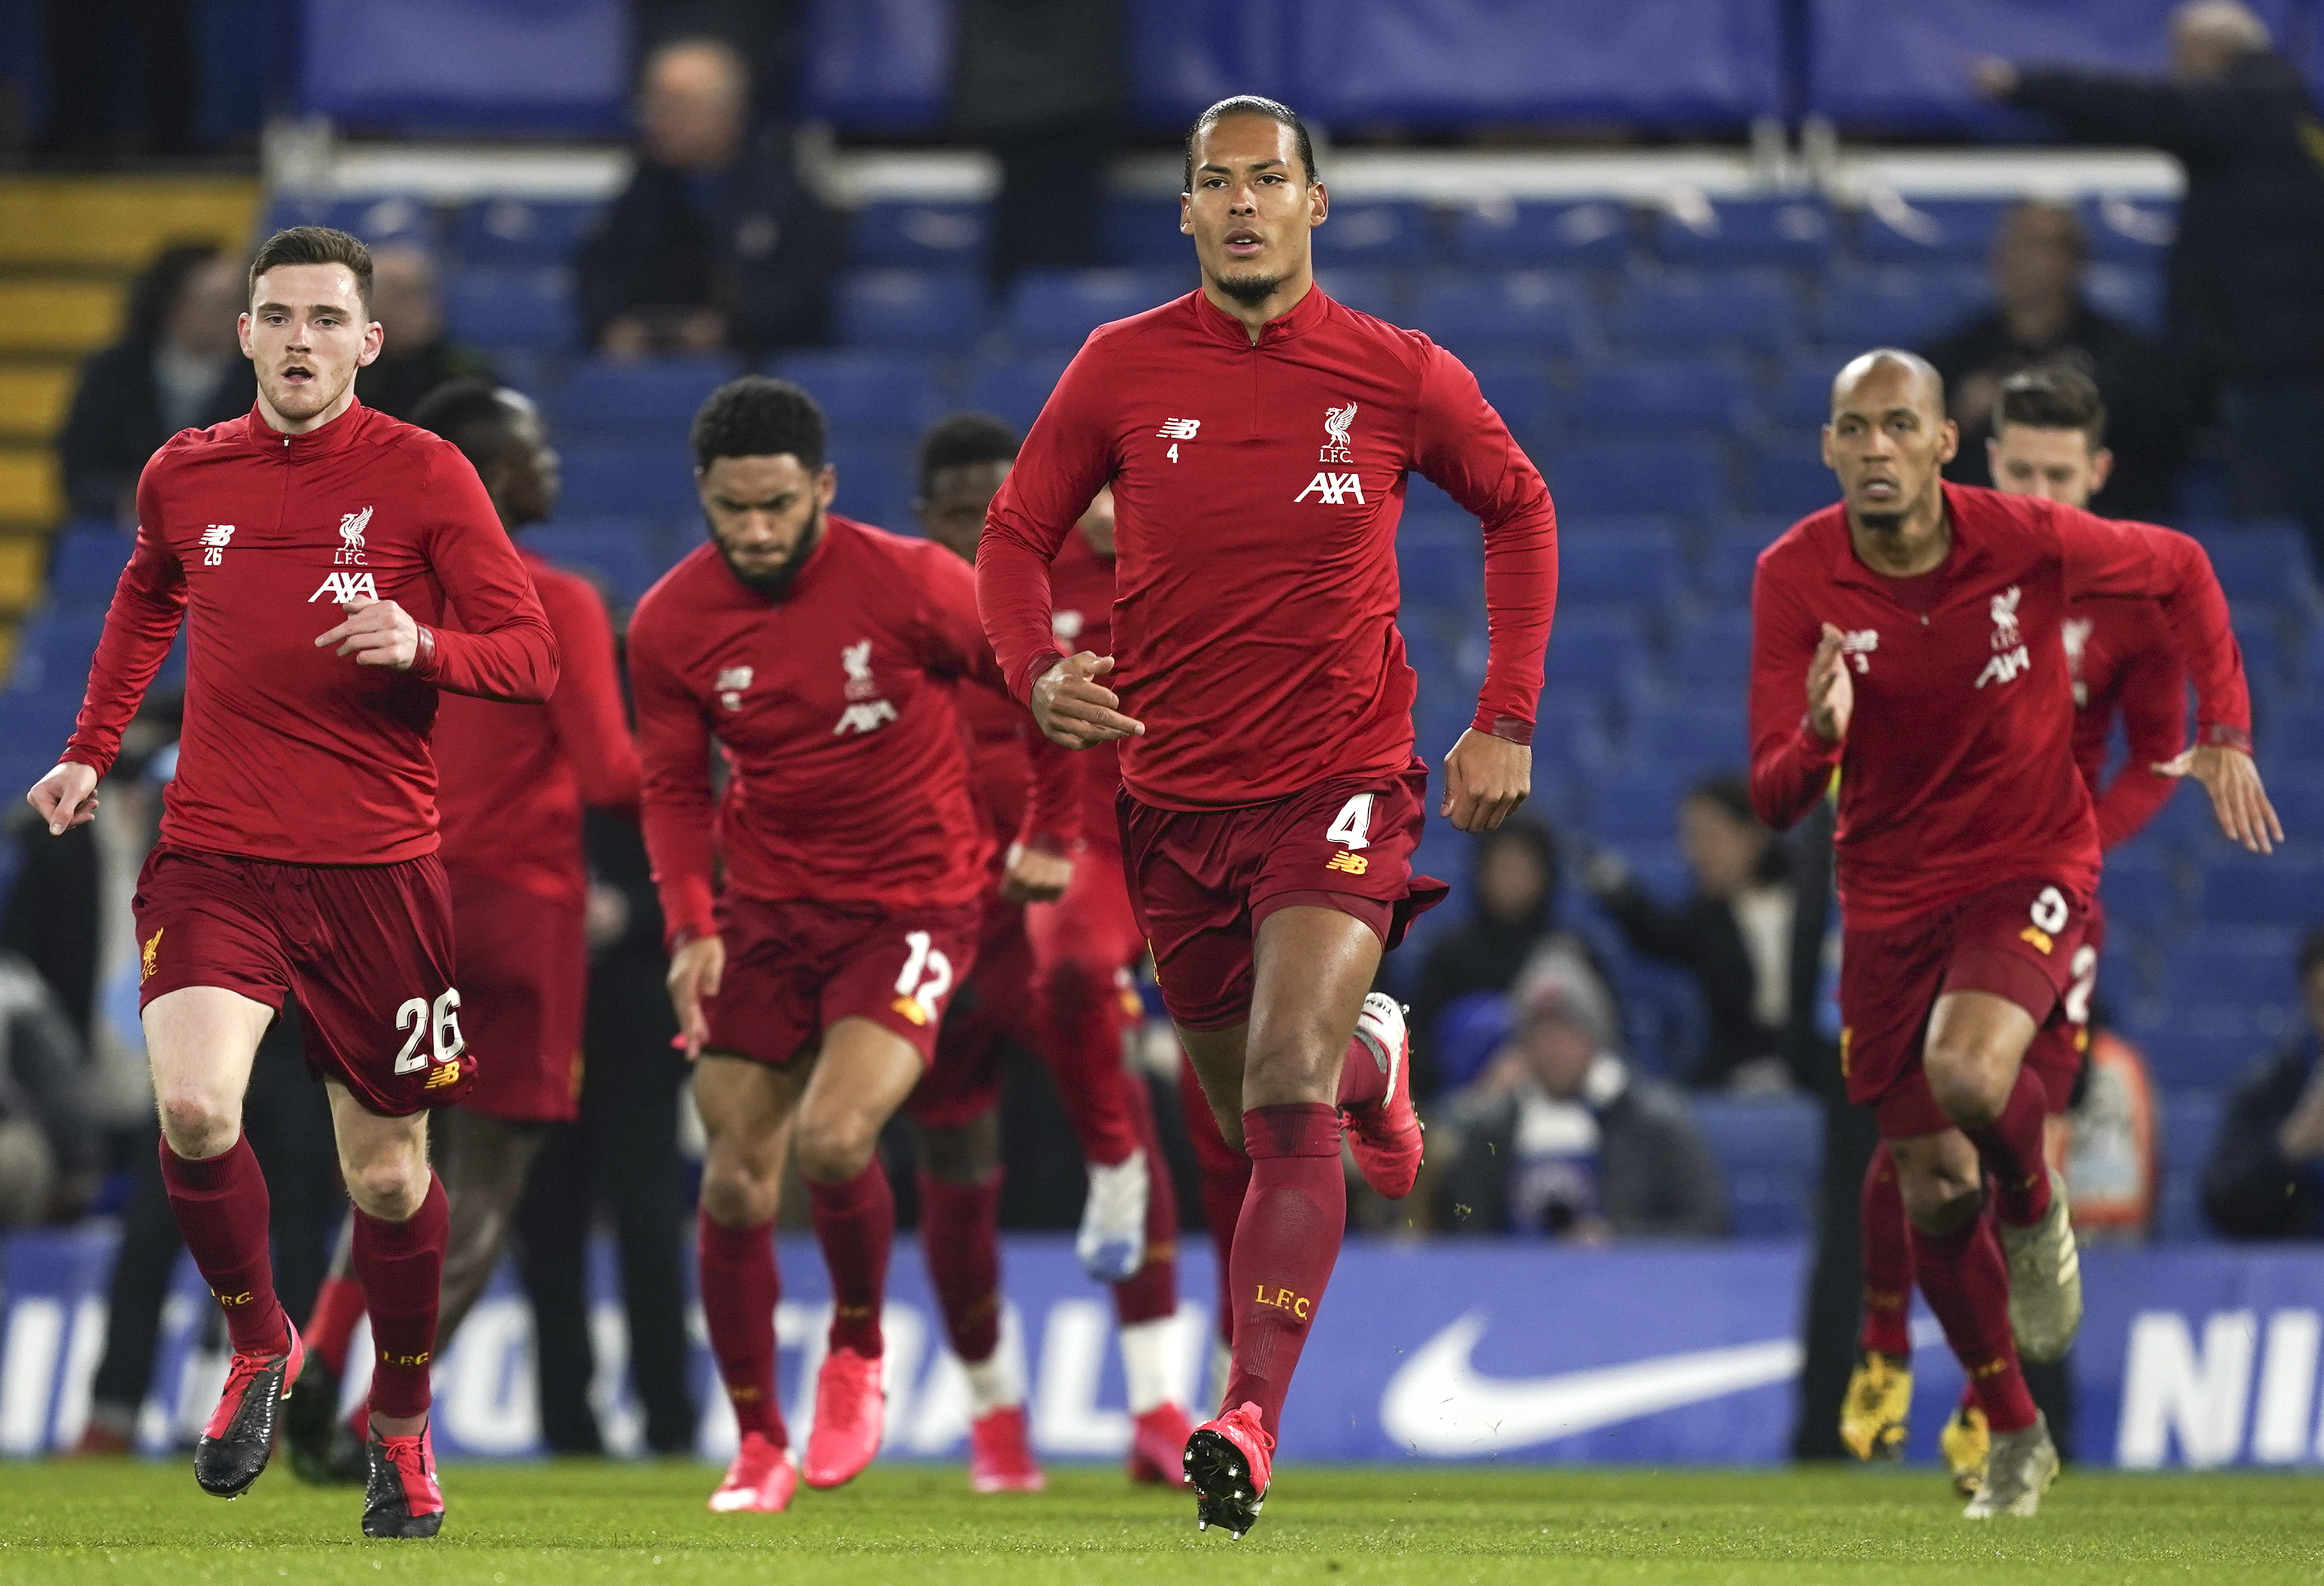 Liverpool has the most valuable squad in Europe